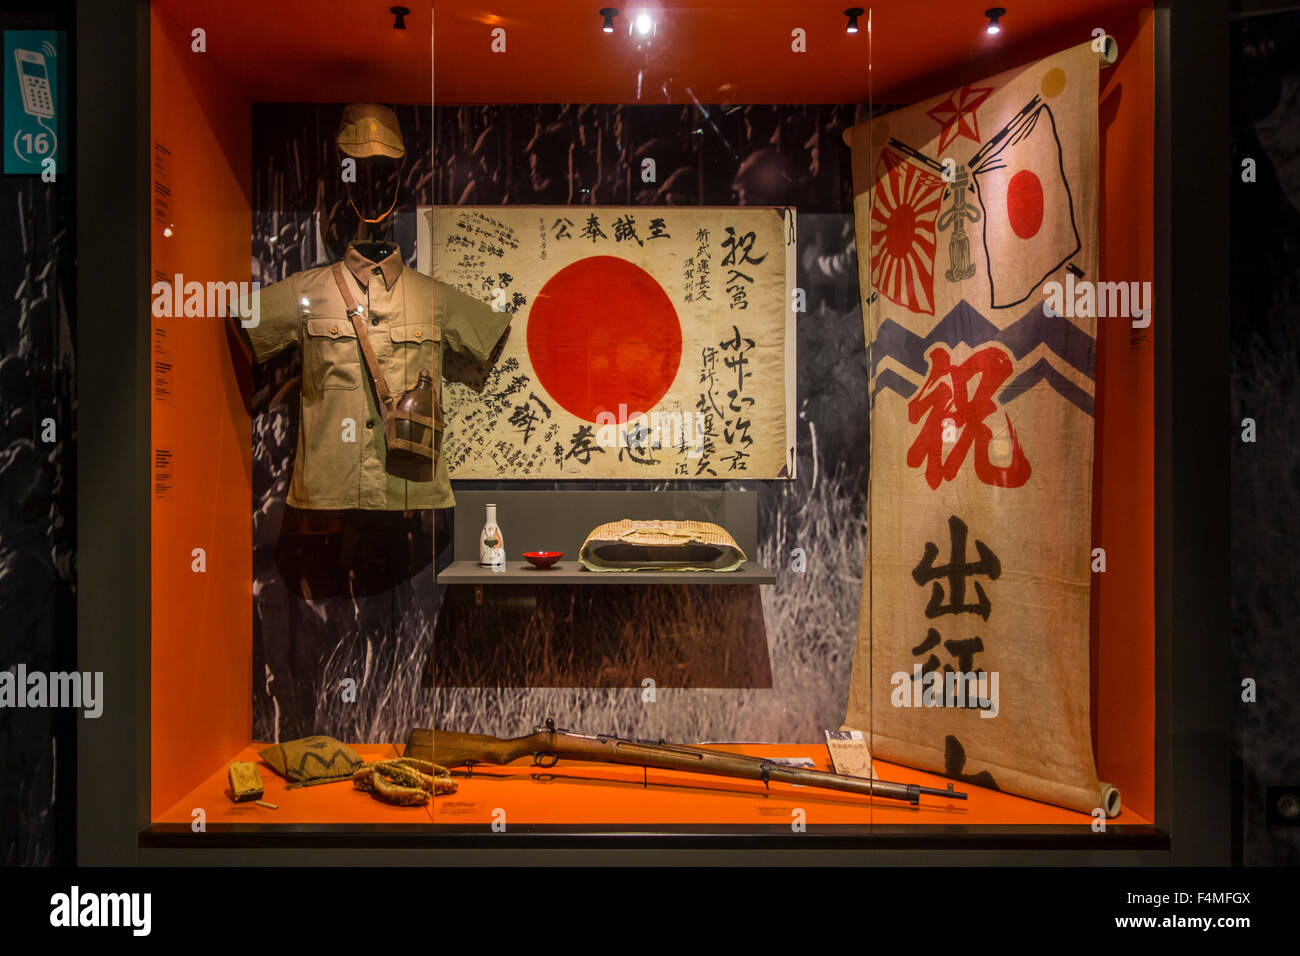 Japanese World War Two weapons, uniform and flags on display Stock